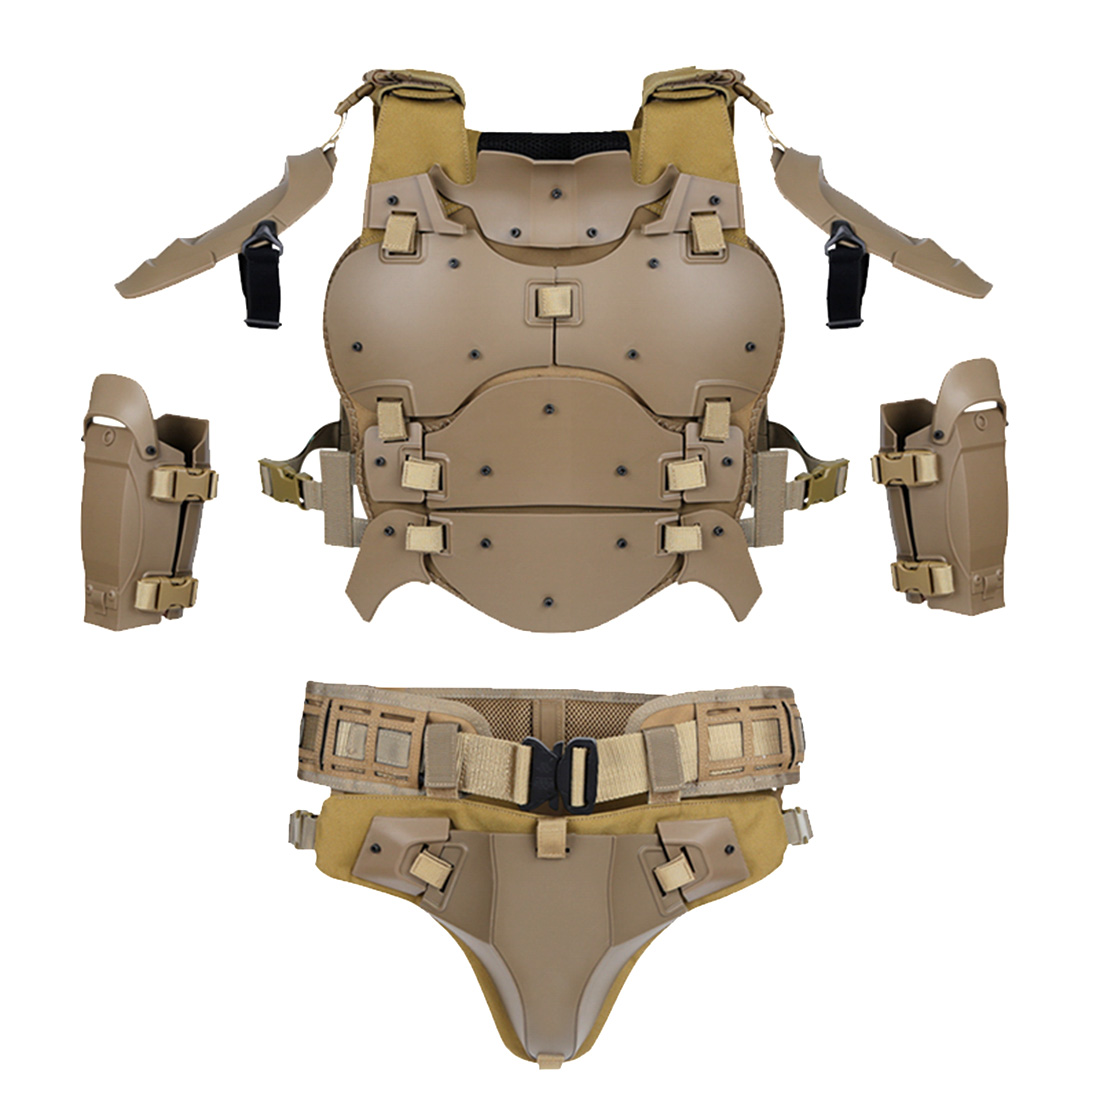 WST Outdoor Multi-function Tactical Armor Set Adjustable Tactical Elbow Pad Waist Seal - Tan